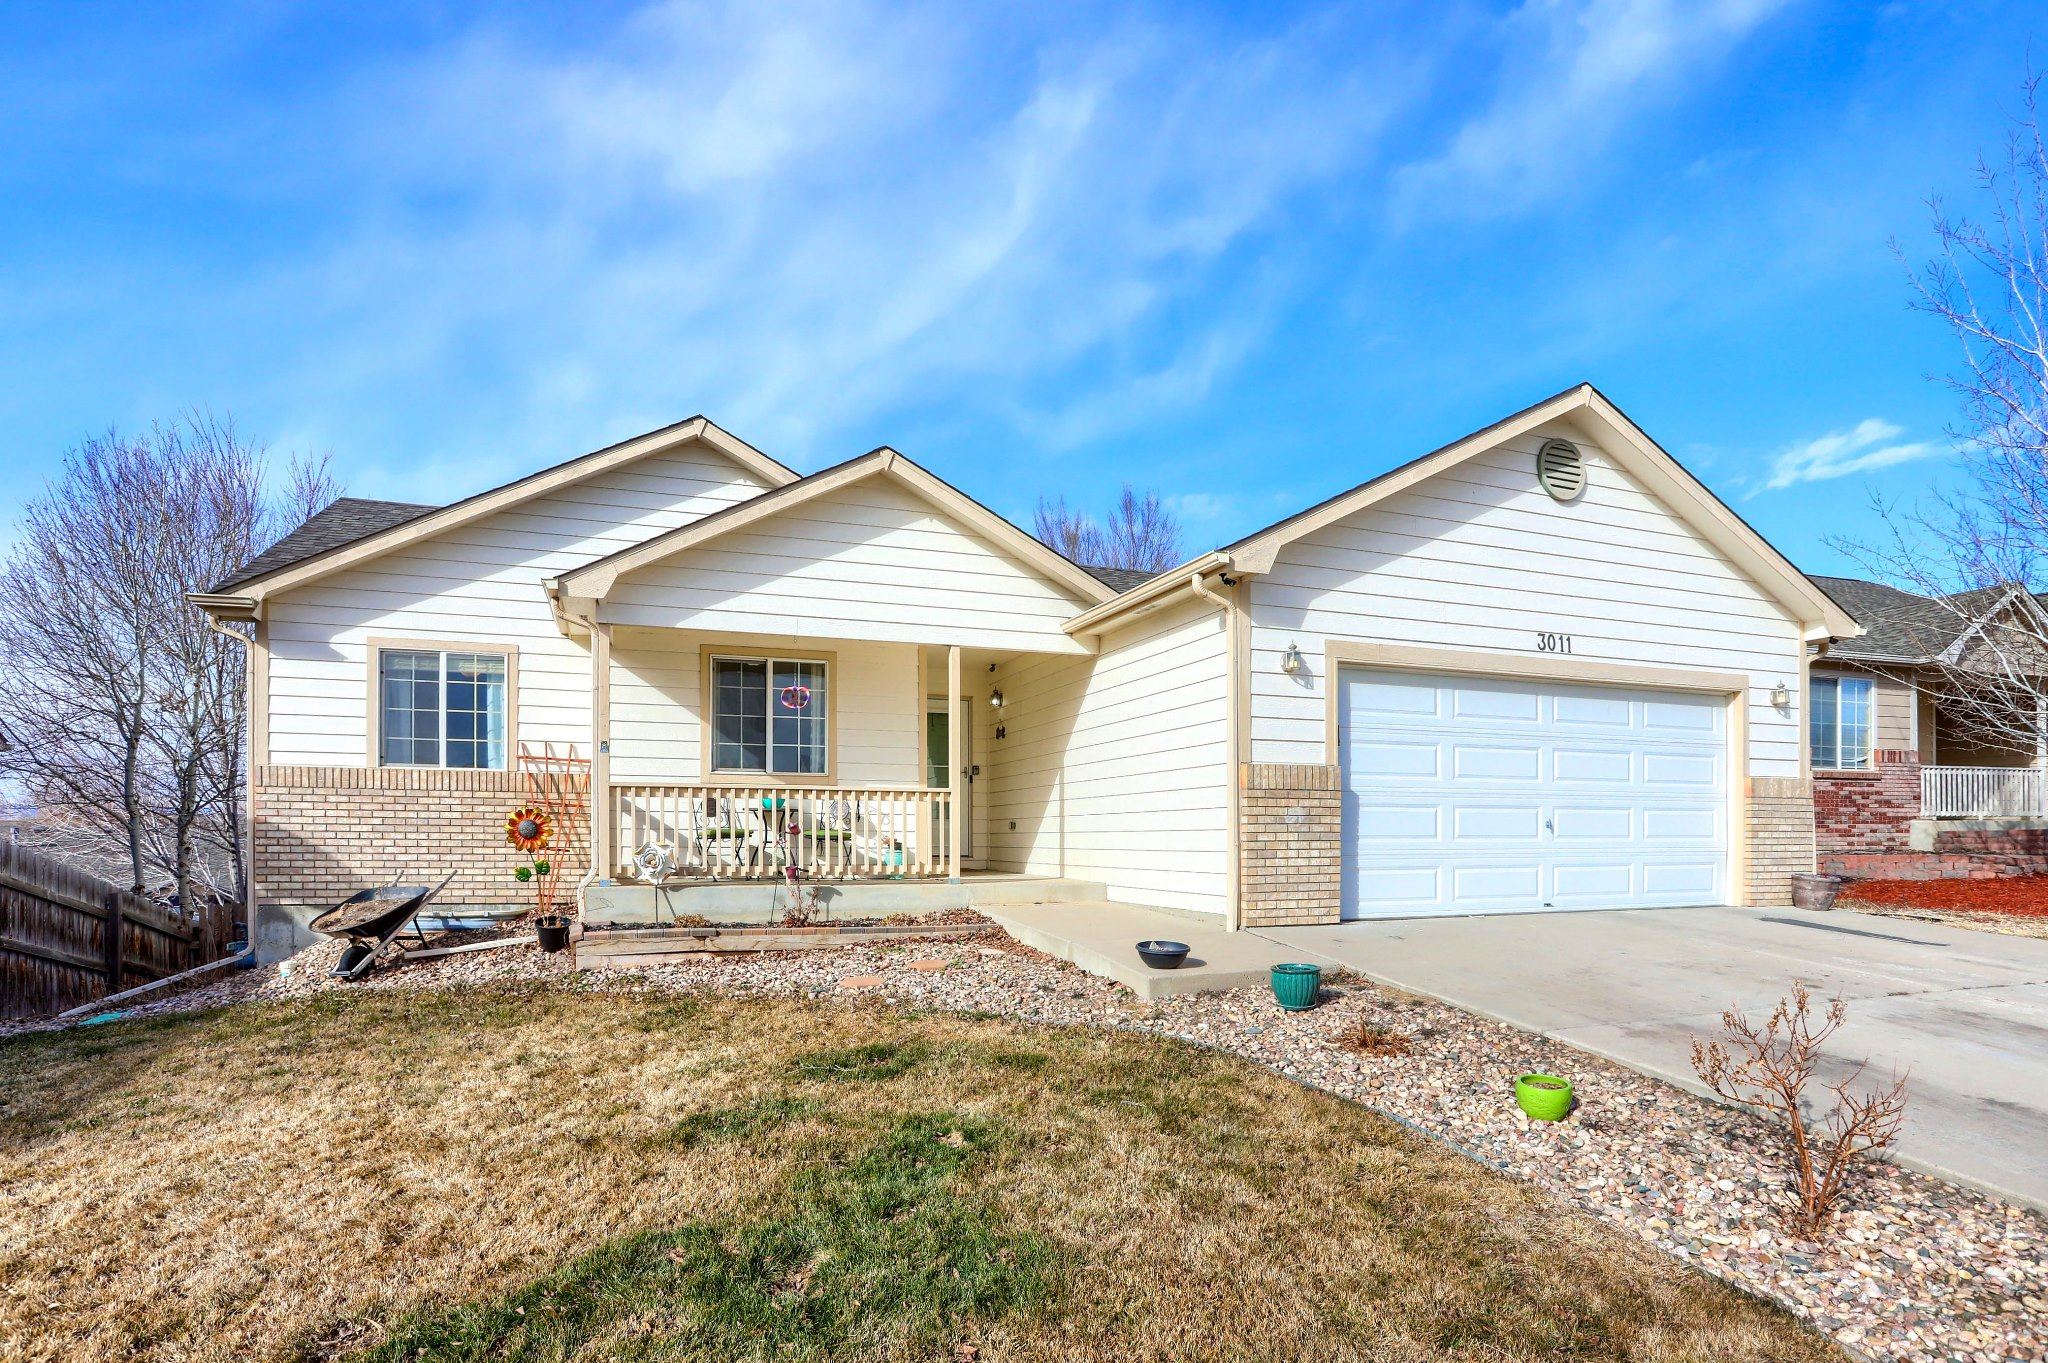 REAL ESTATE LISTING: 3011 45th Ave Greeley Front Exterior